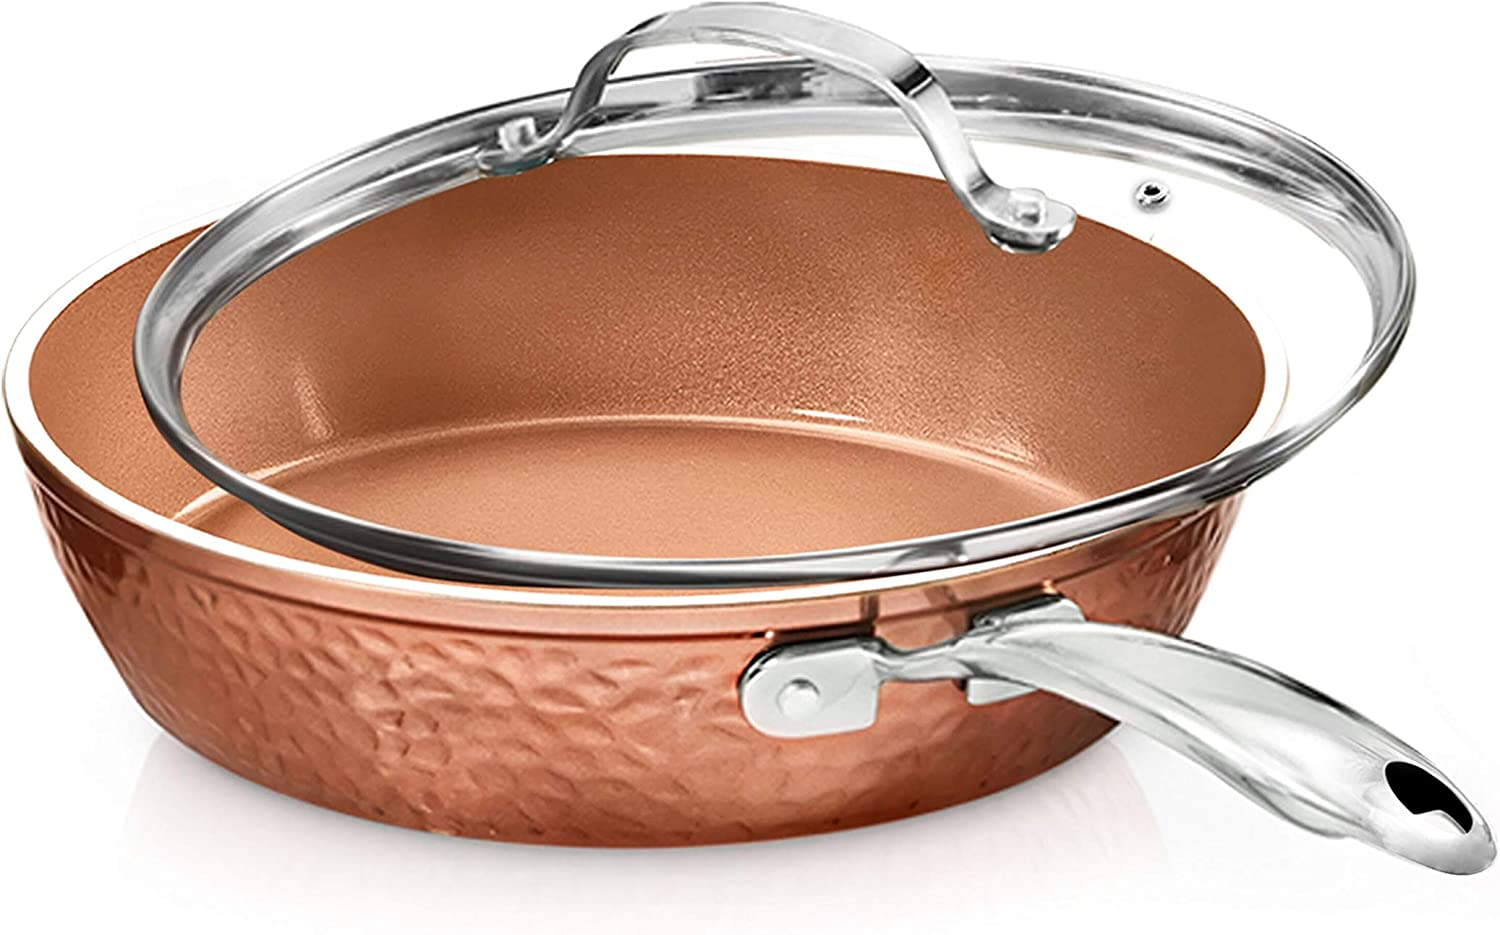 "Gotham Steel 12"" Nonstick Fry Pan with Lid – Hammered Copper Collection, Premium Aluminum Cookware with Stainless Steel Handles, Induction Plate for Even Heating, Dishwasher & Oven Safe"